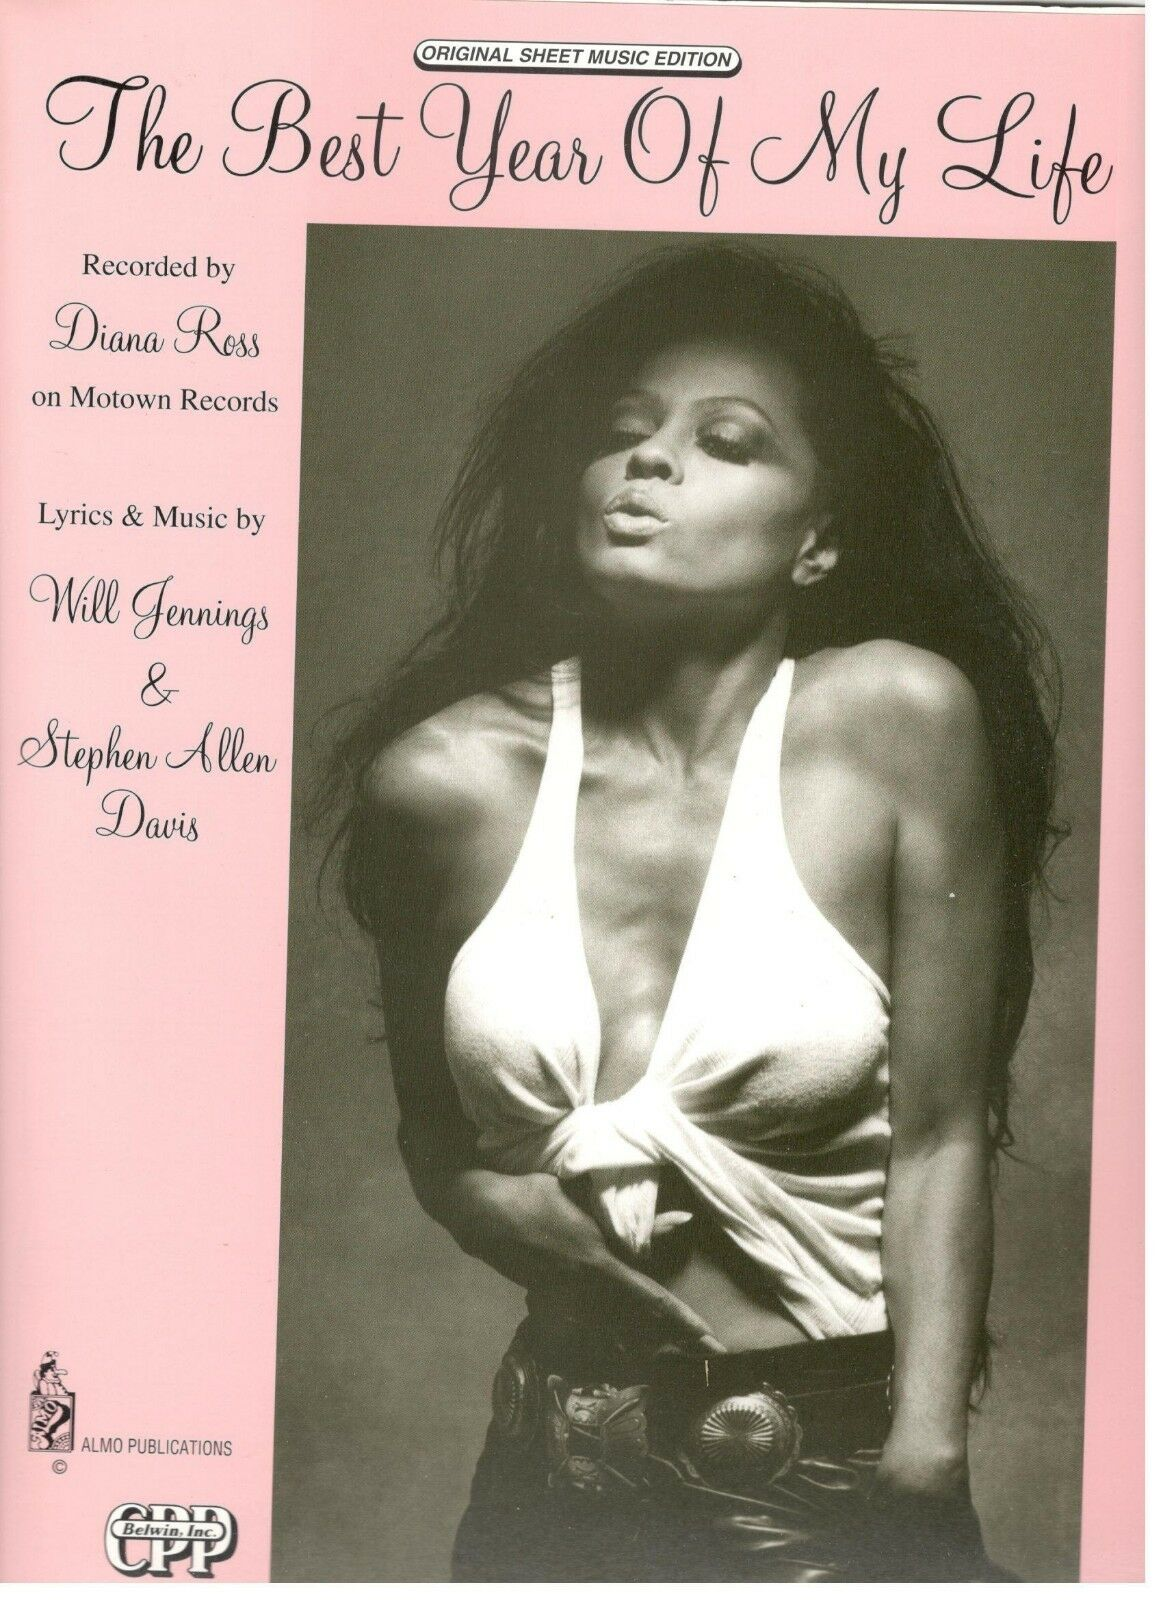 DIANA ROSS  THE BEST YEAR OF MY LIFE  SHEET MUSIC-EXTREMELY RARE-1993-NEW-MINT